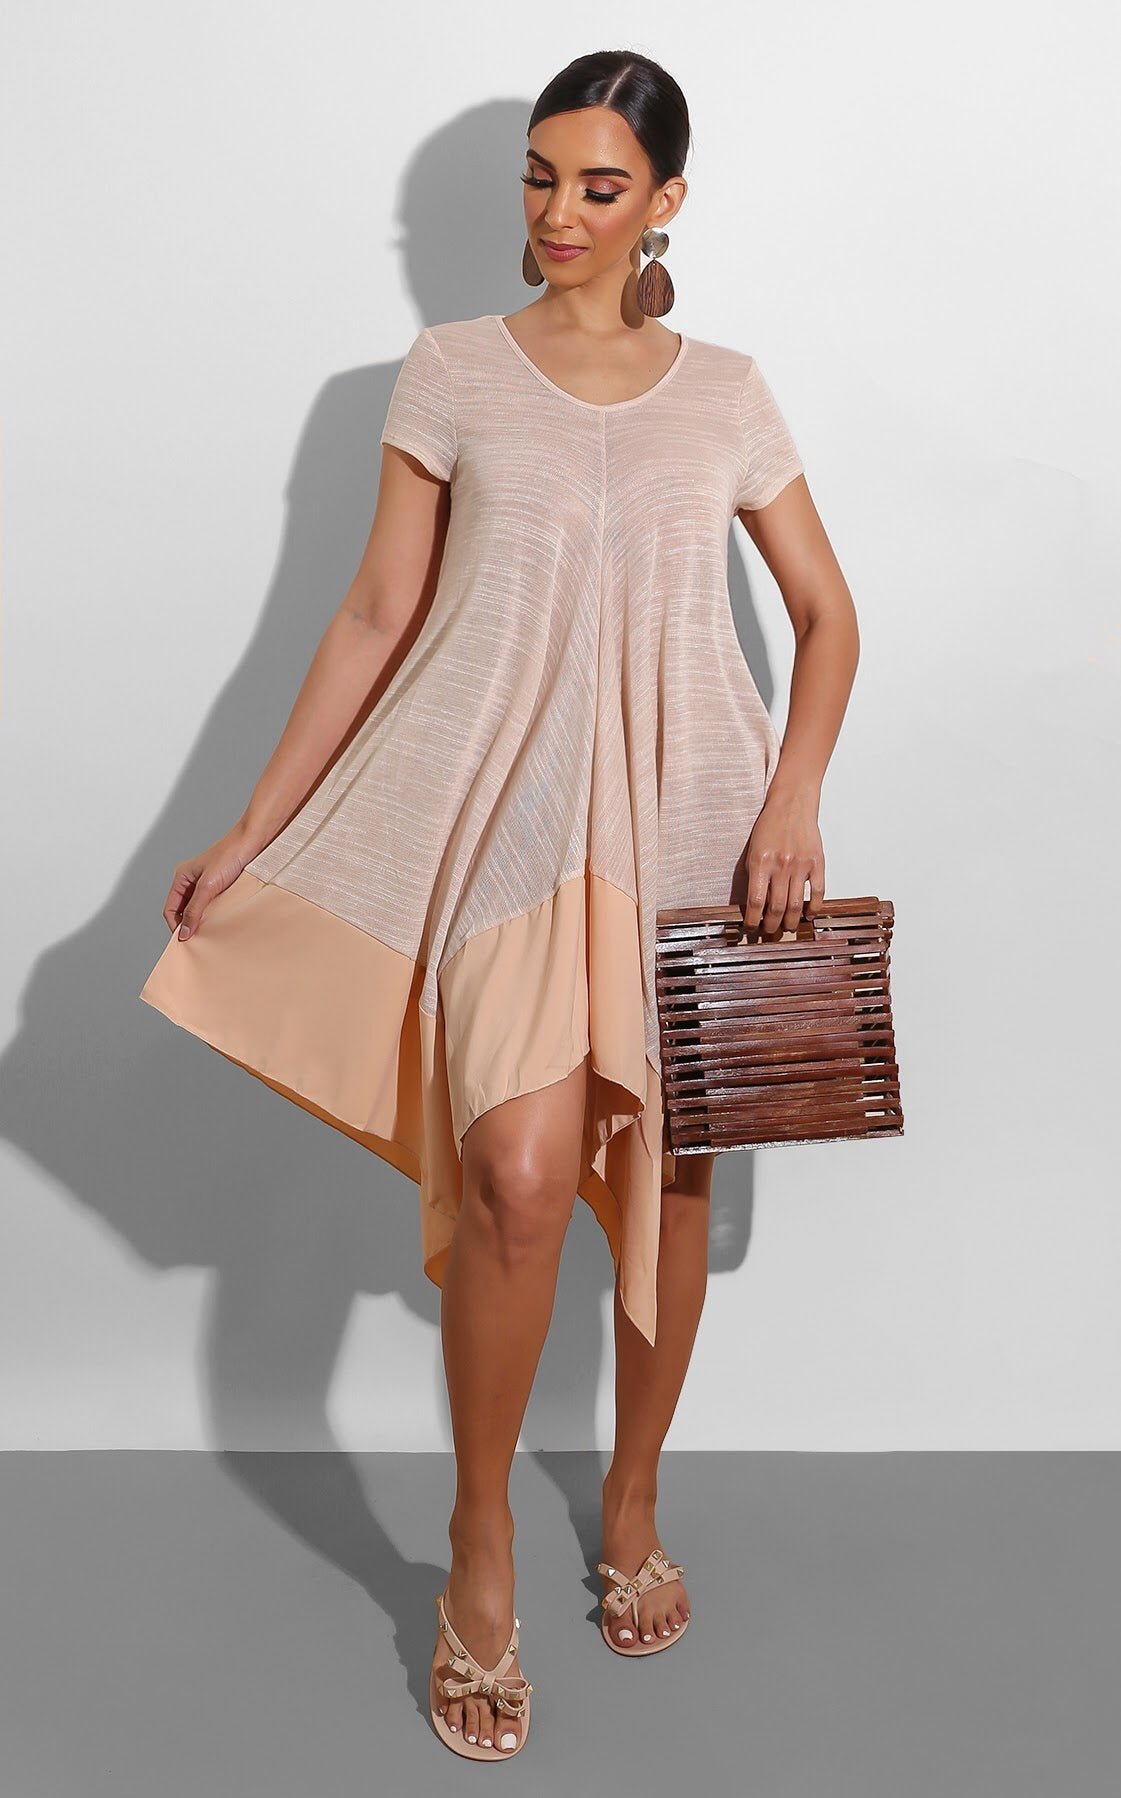 Backyard Picnic Dress Nude